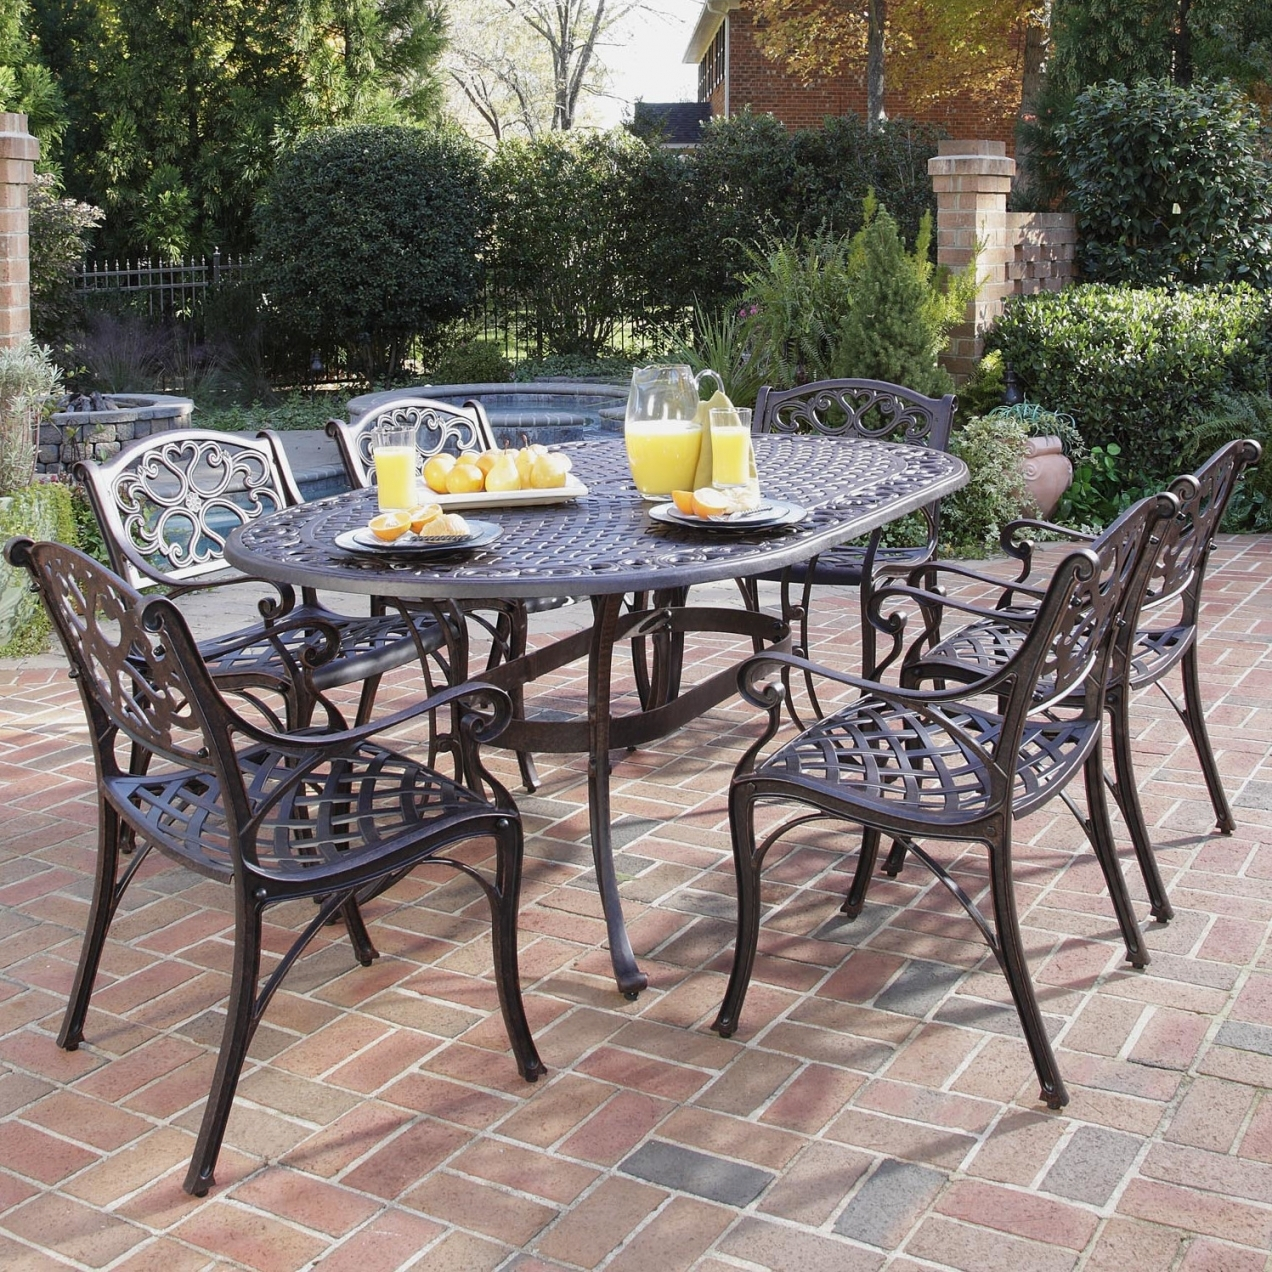 Image of: Commercial Outdoor Dining Furniture Pertaining To Commercial Outdoor Dining Furniture Great Commercial Outdoor Dining Furniture